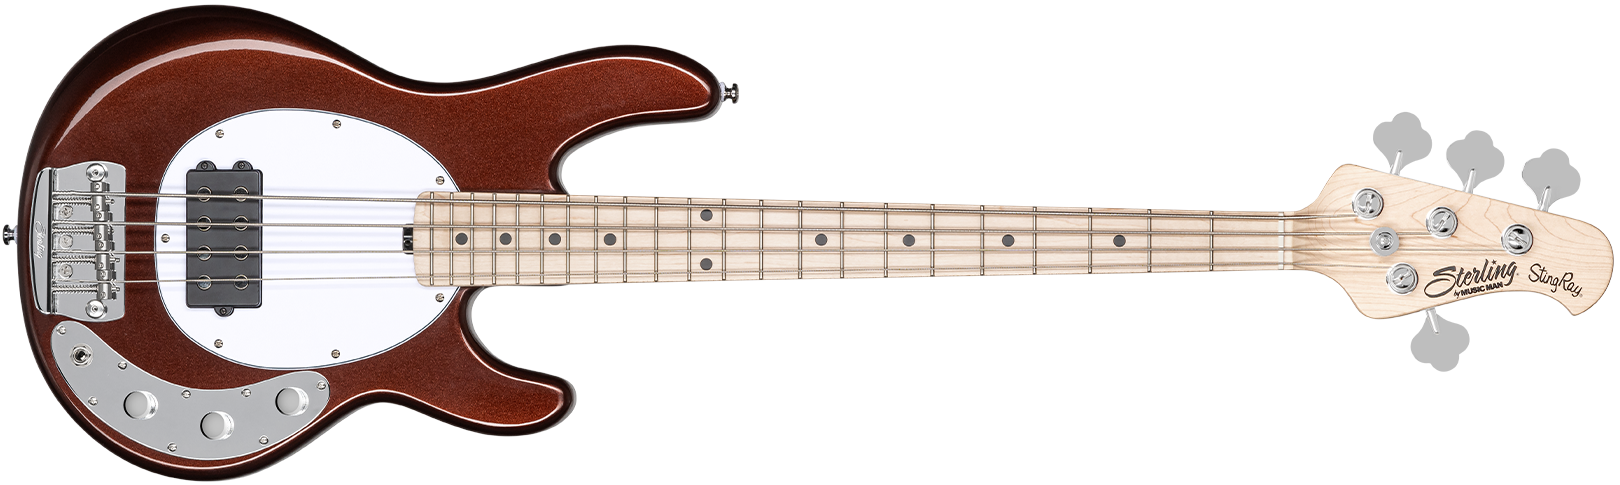 The Stingray Short Scale bass in Dropped Copper front details.